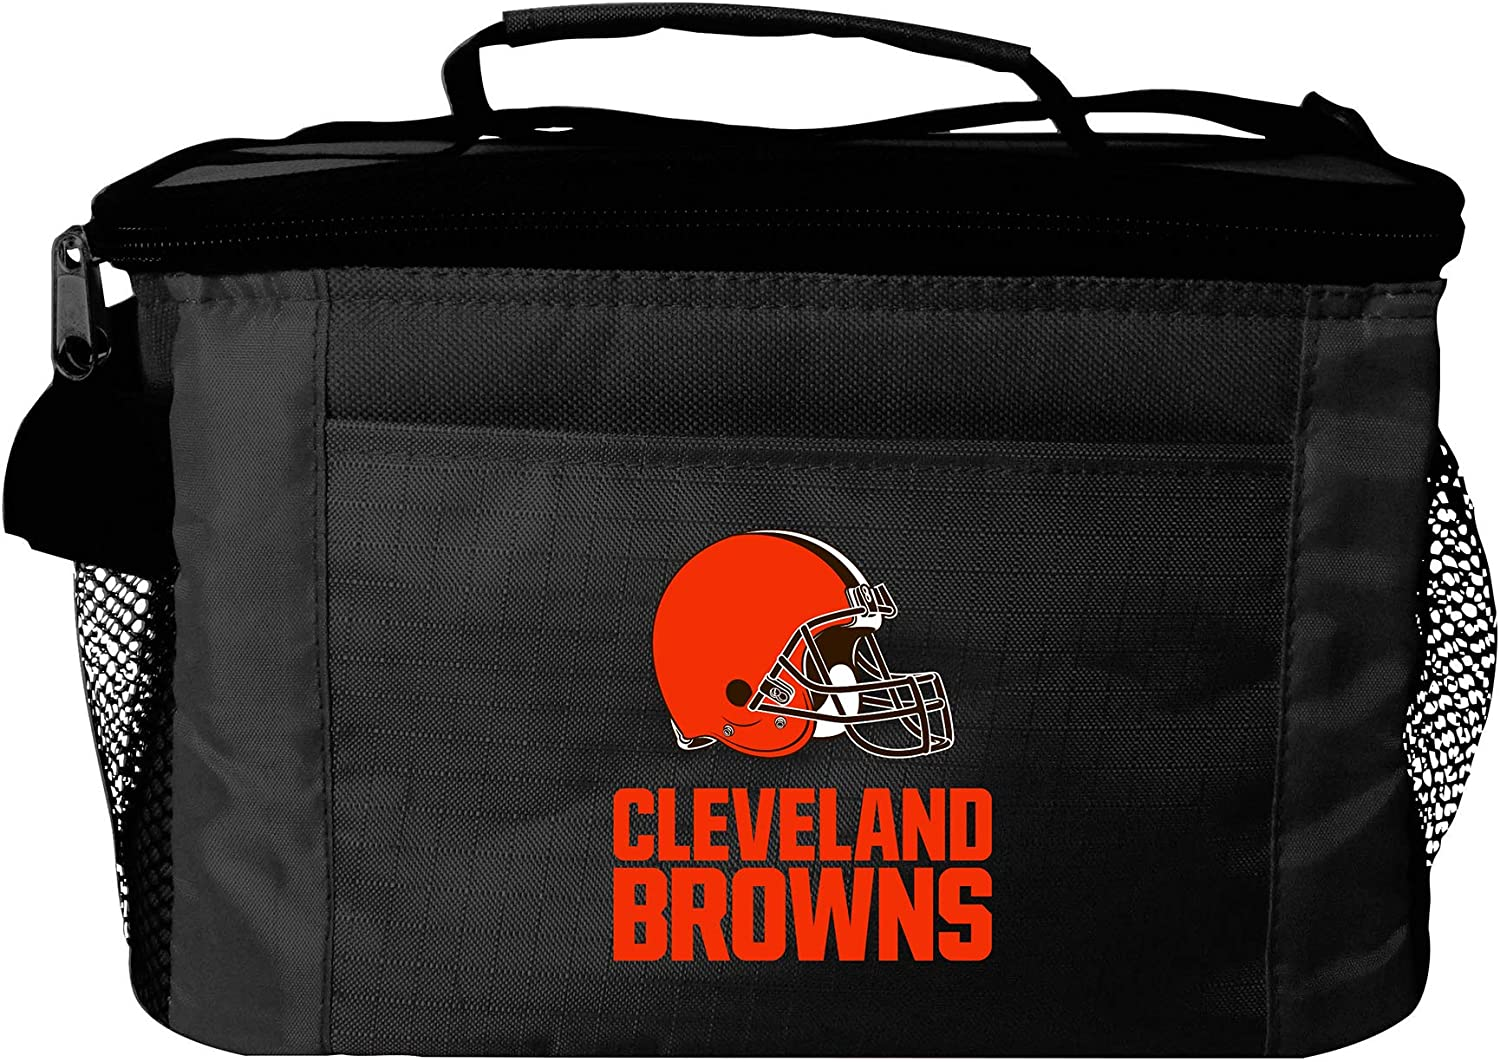 Black NFL Cleveland Browns Insulated Lunch Cooler Bag with Zipper Closure